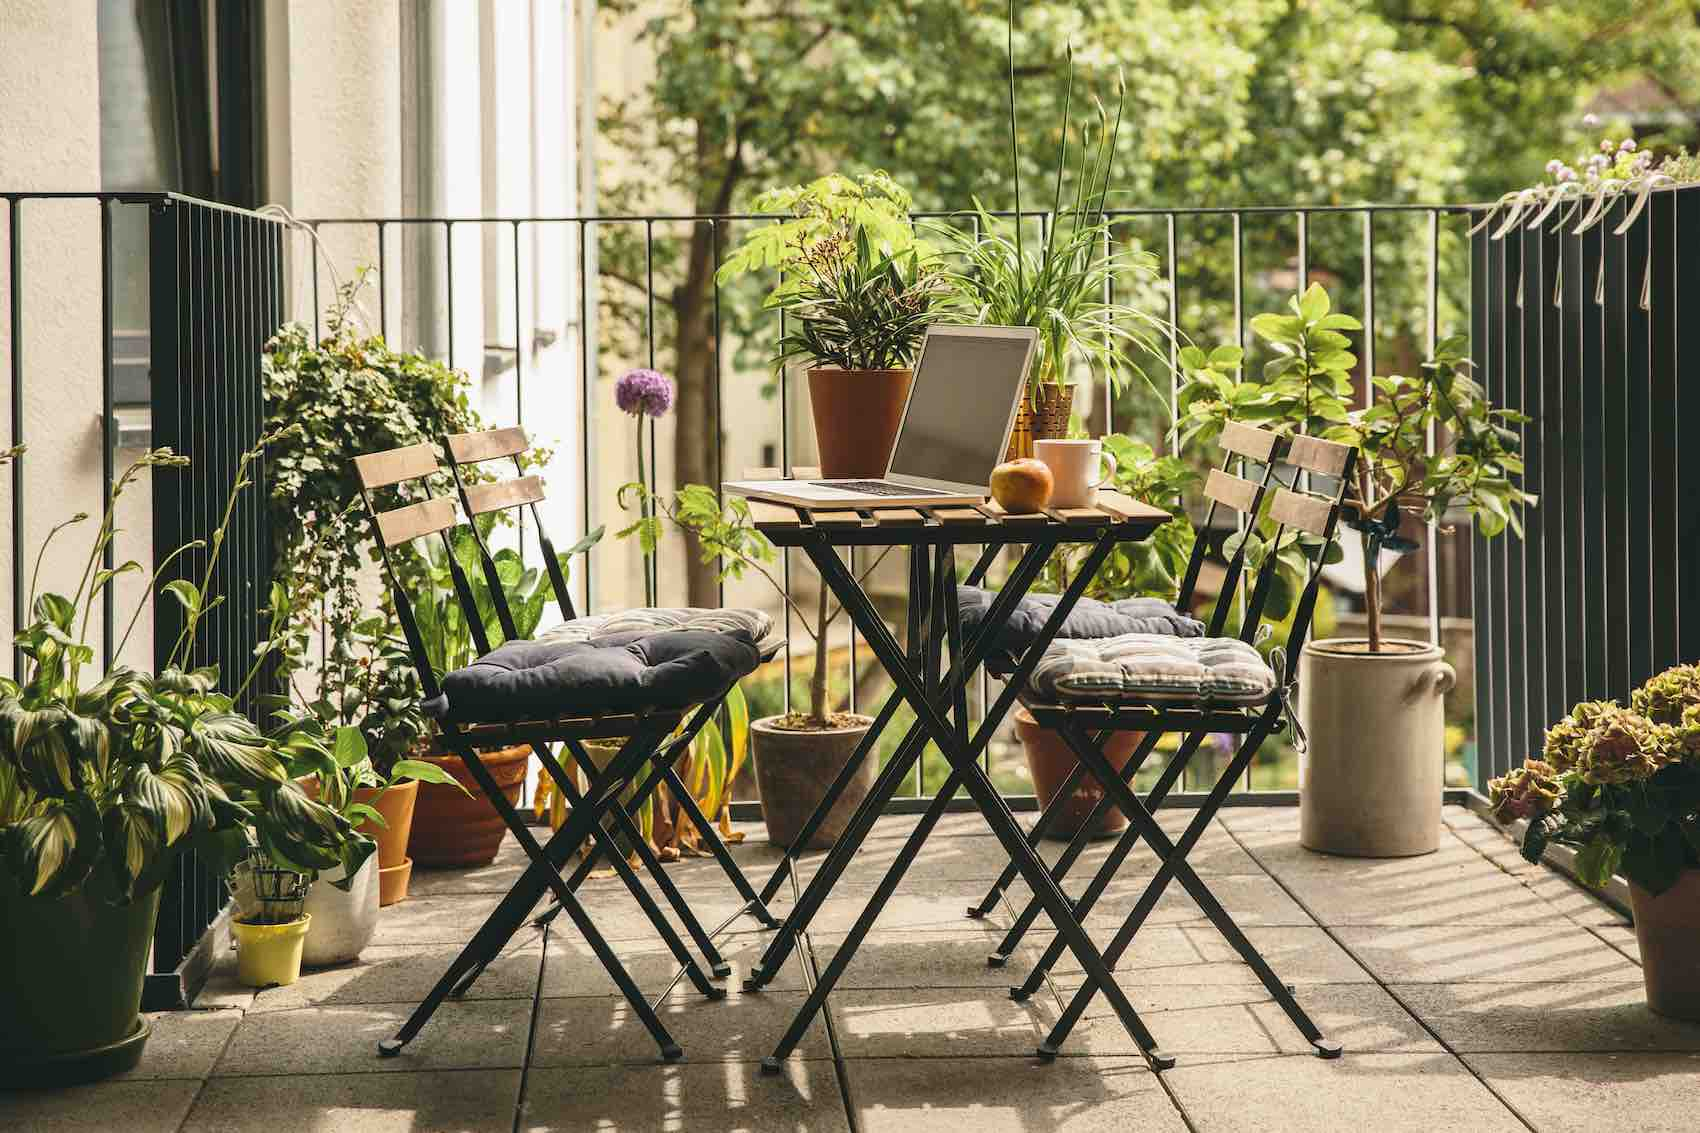 Thumbnail for 5 Indoor-Outdoor Plants That Love a Seasonal Change of Scenery